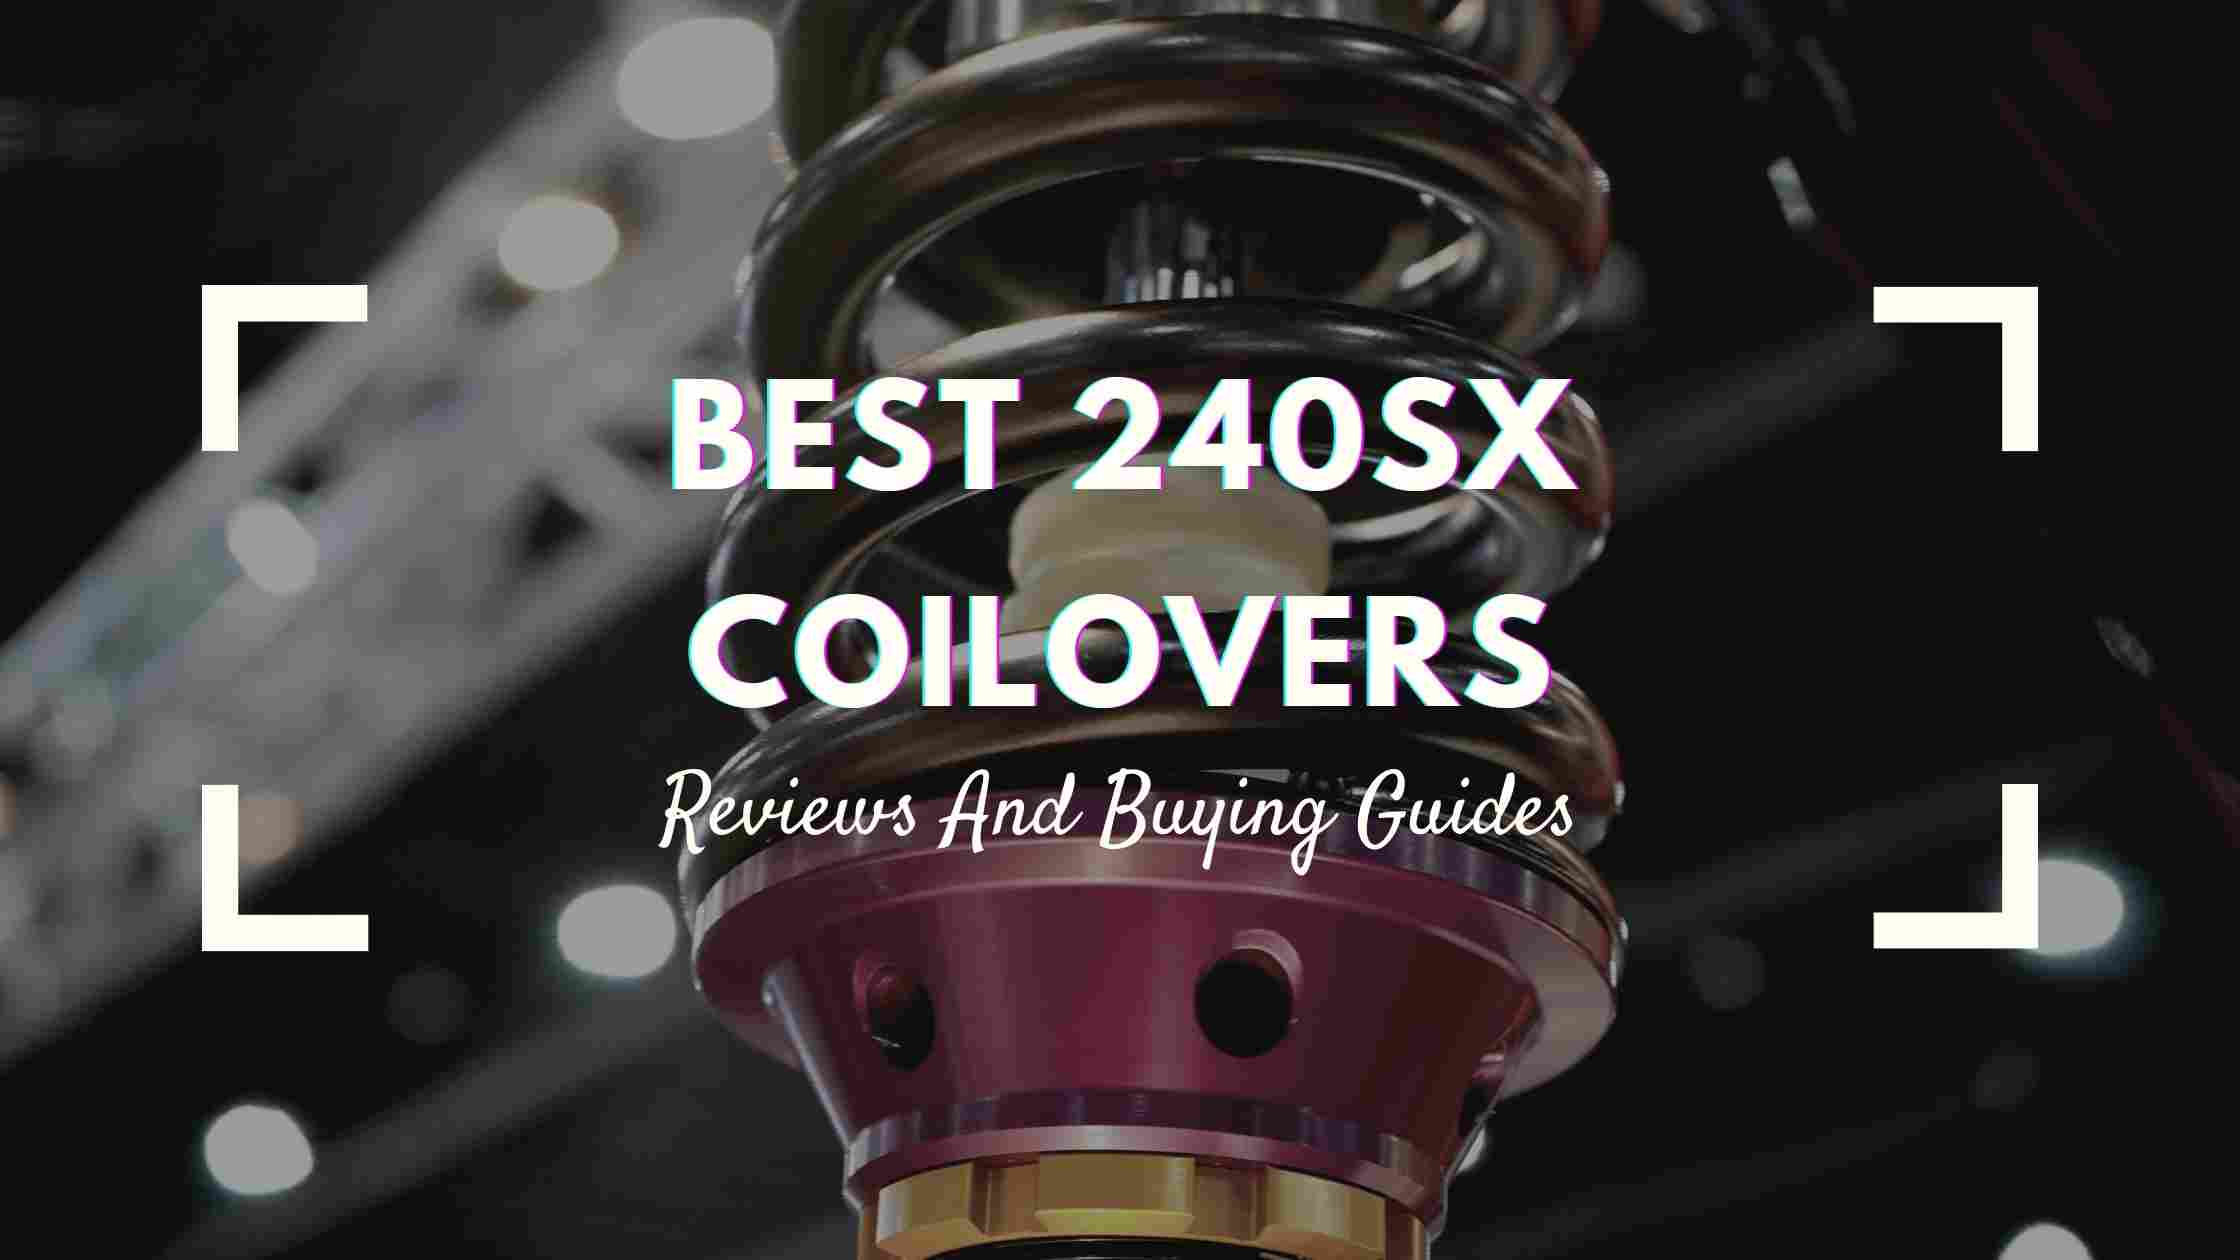 Best 240sx Coilovers